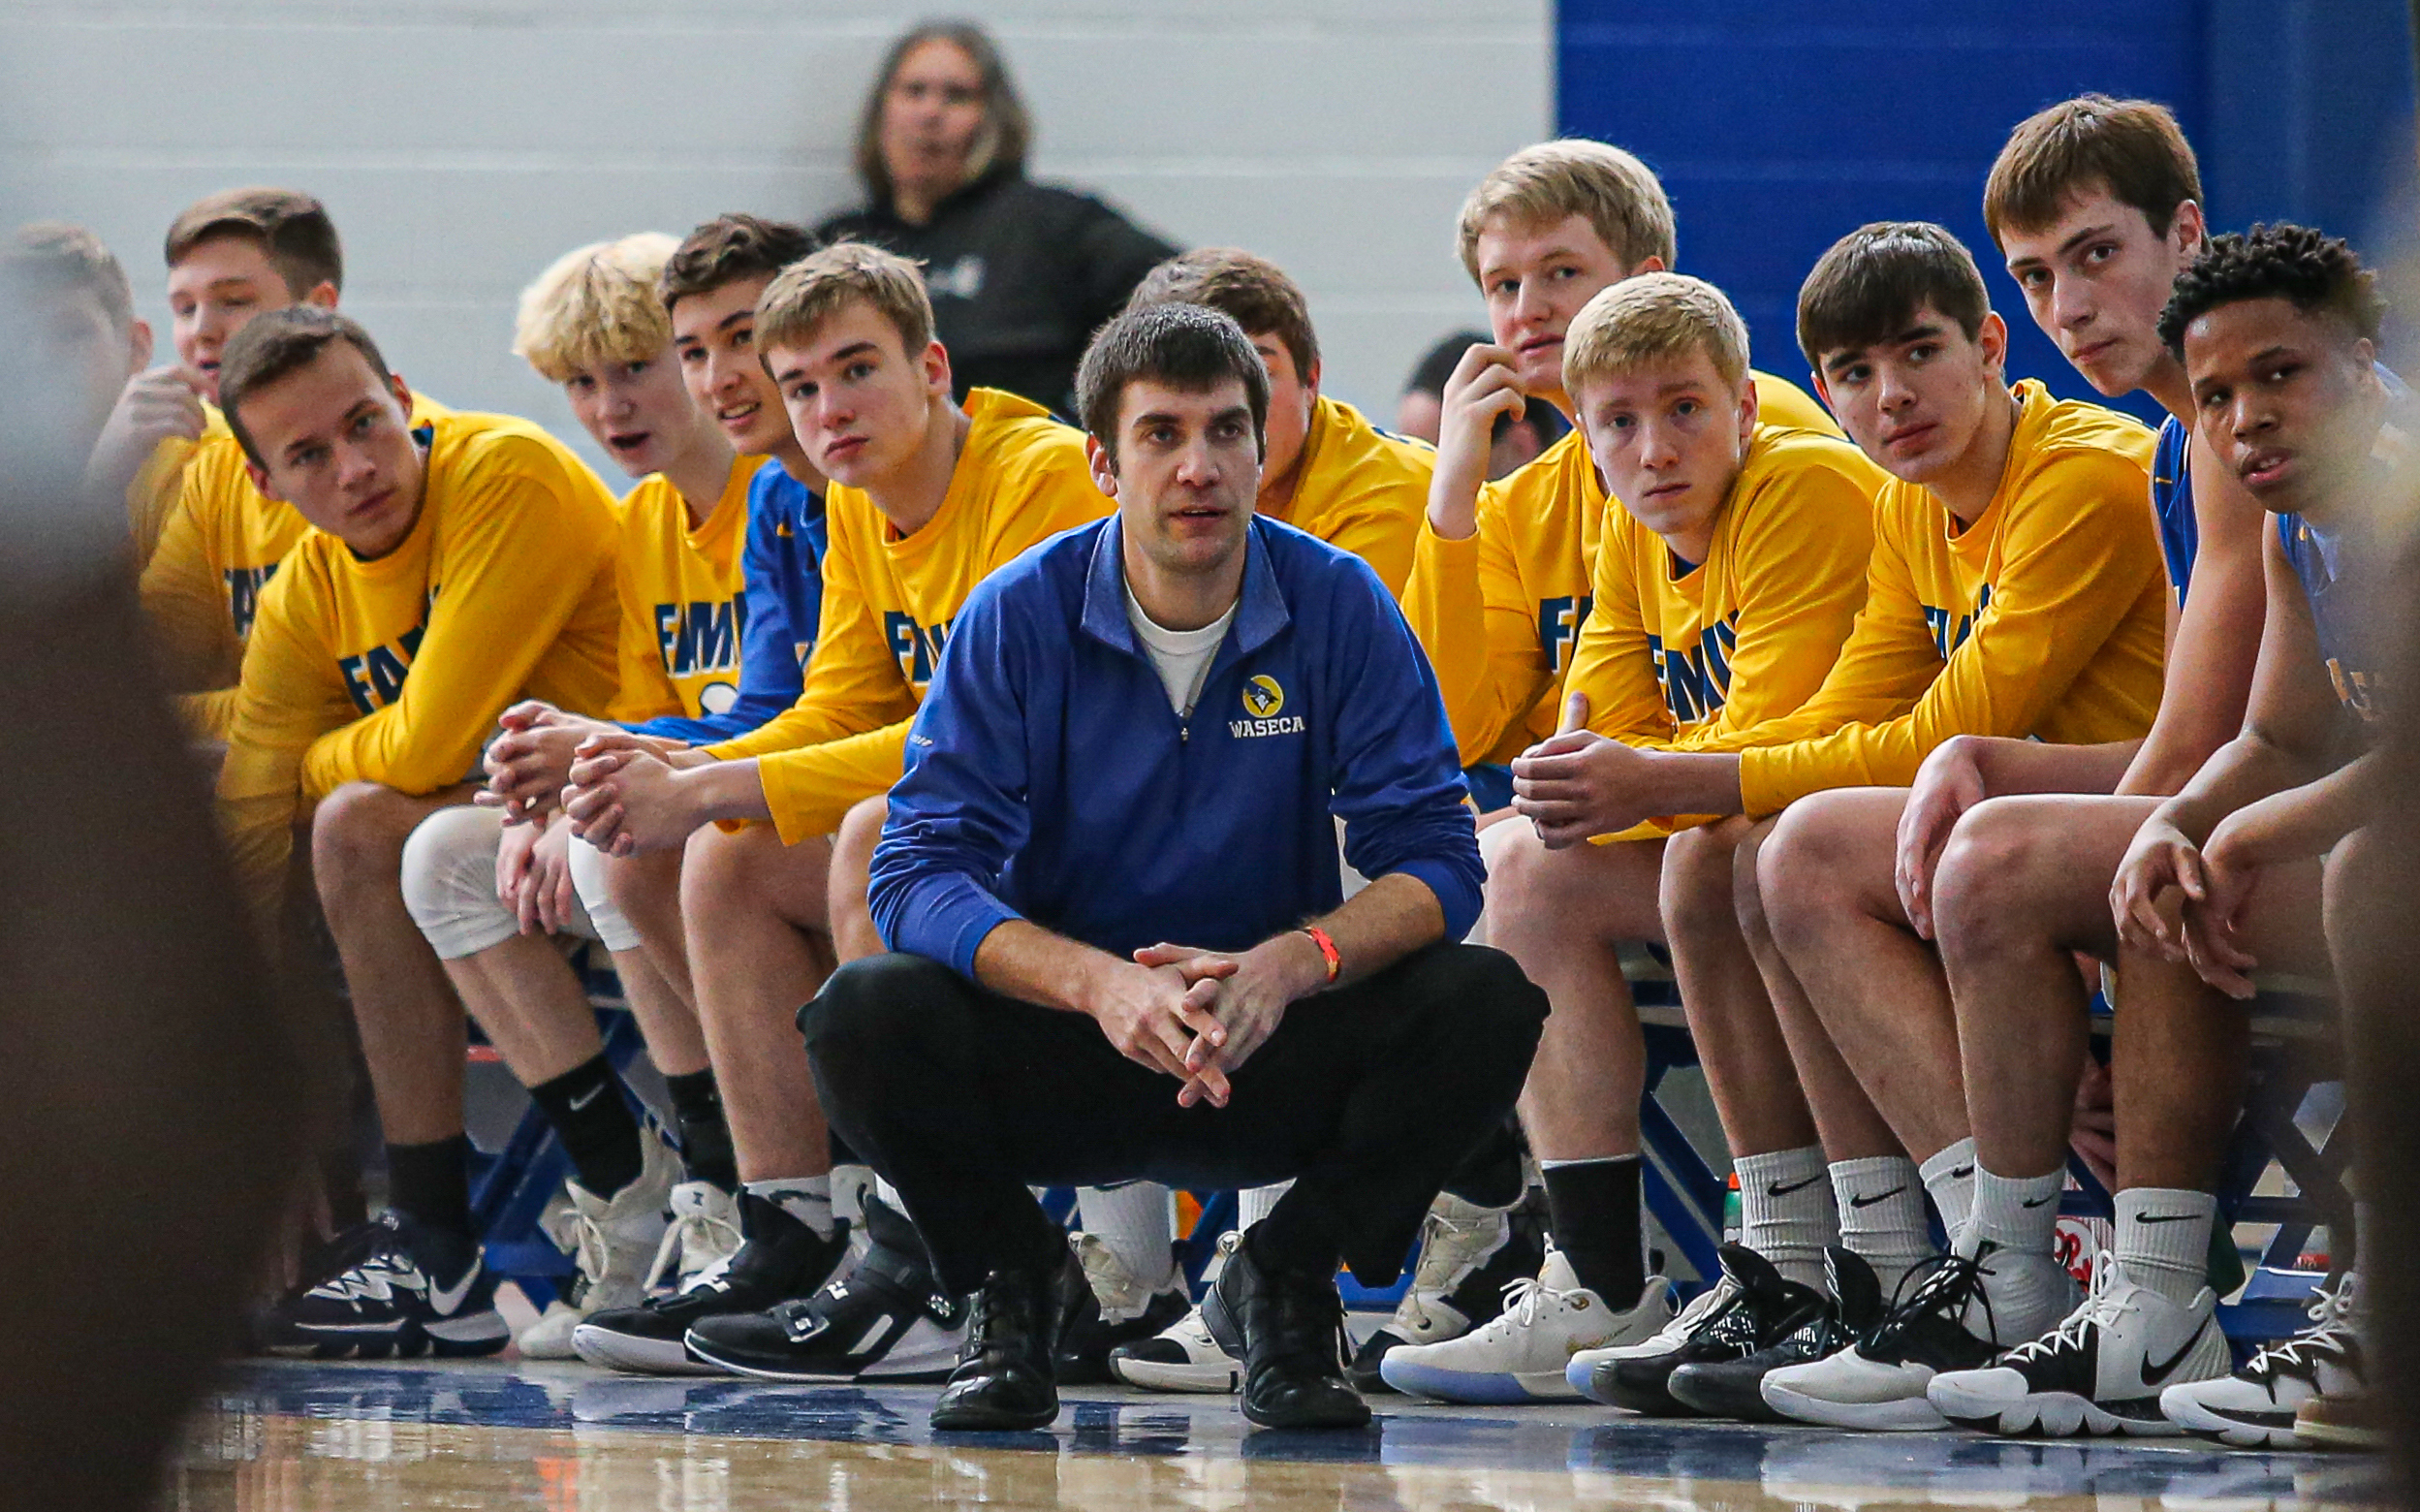 Coach Seth Anderson brings his Waseca team to Minnehaha Academy on Tuesday in a more business-like frame of mind than the Bluejays who hosted the Redhawks a year ago. Photo by Mark Hvidsten, SportsEngine